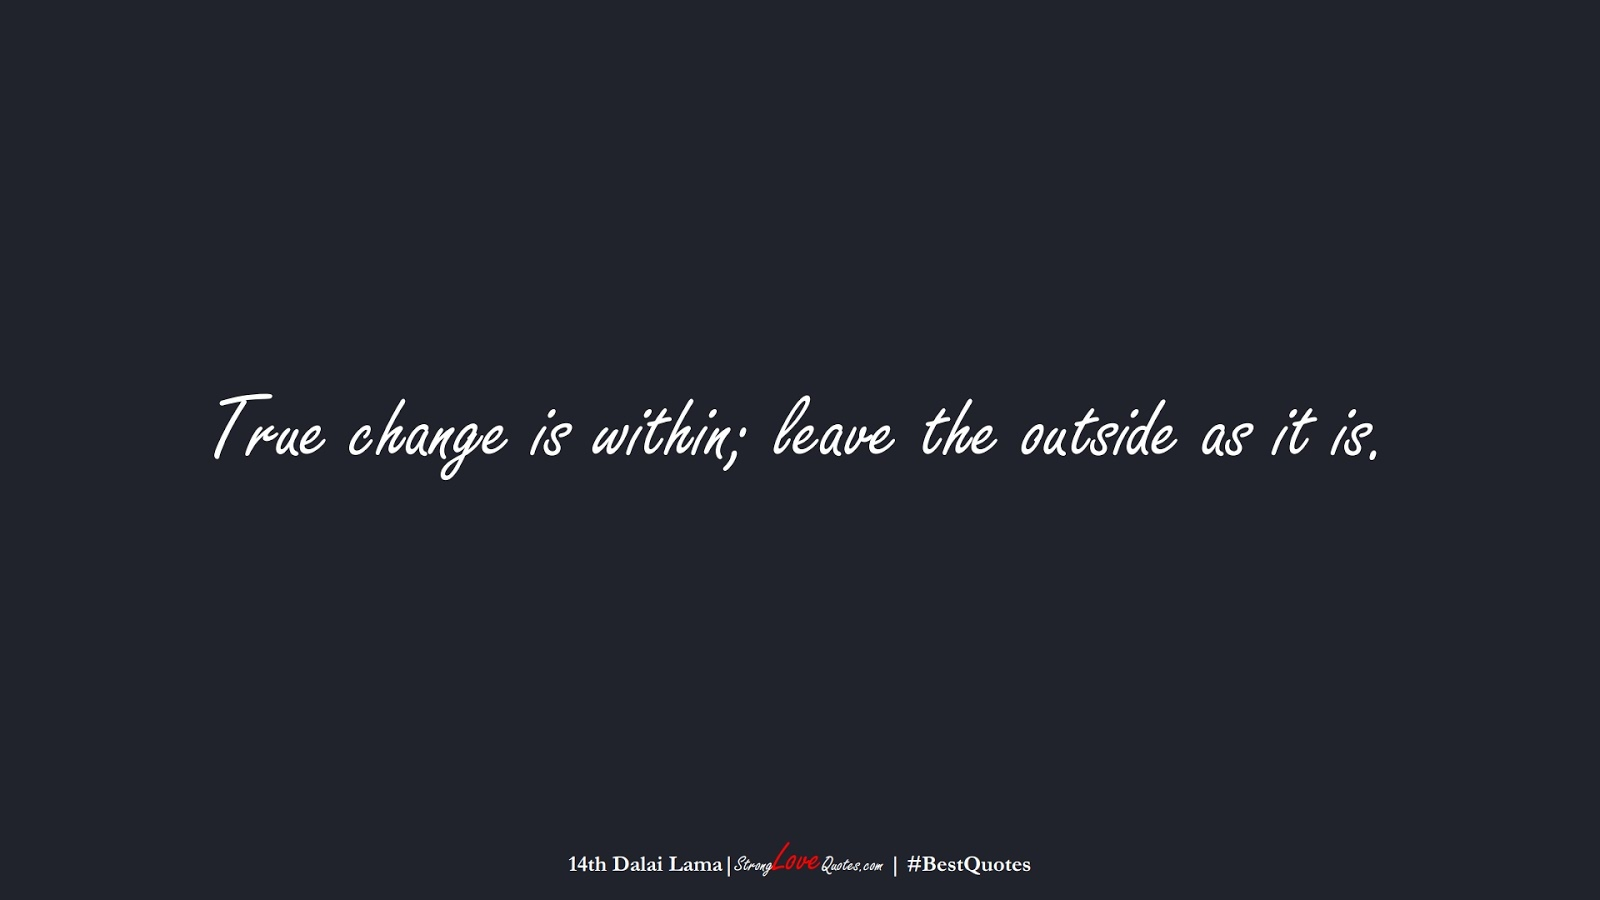 True change is within; leave the outside as it is. (14th Dalai Lama);  #BestQuotes